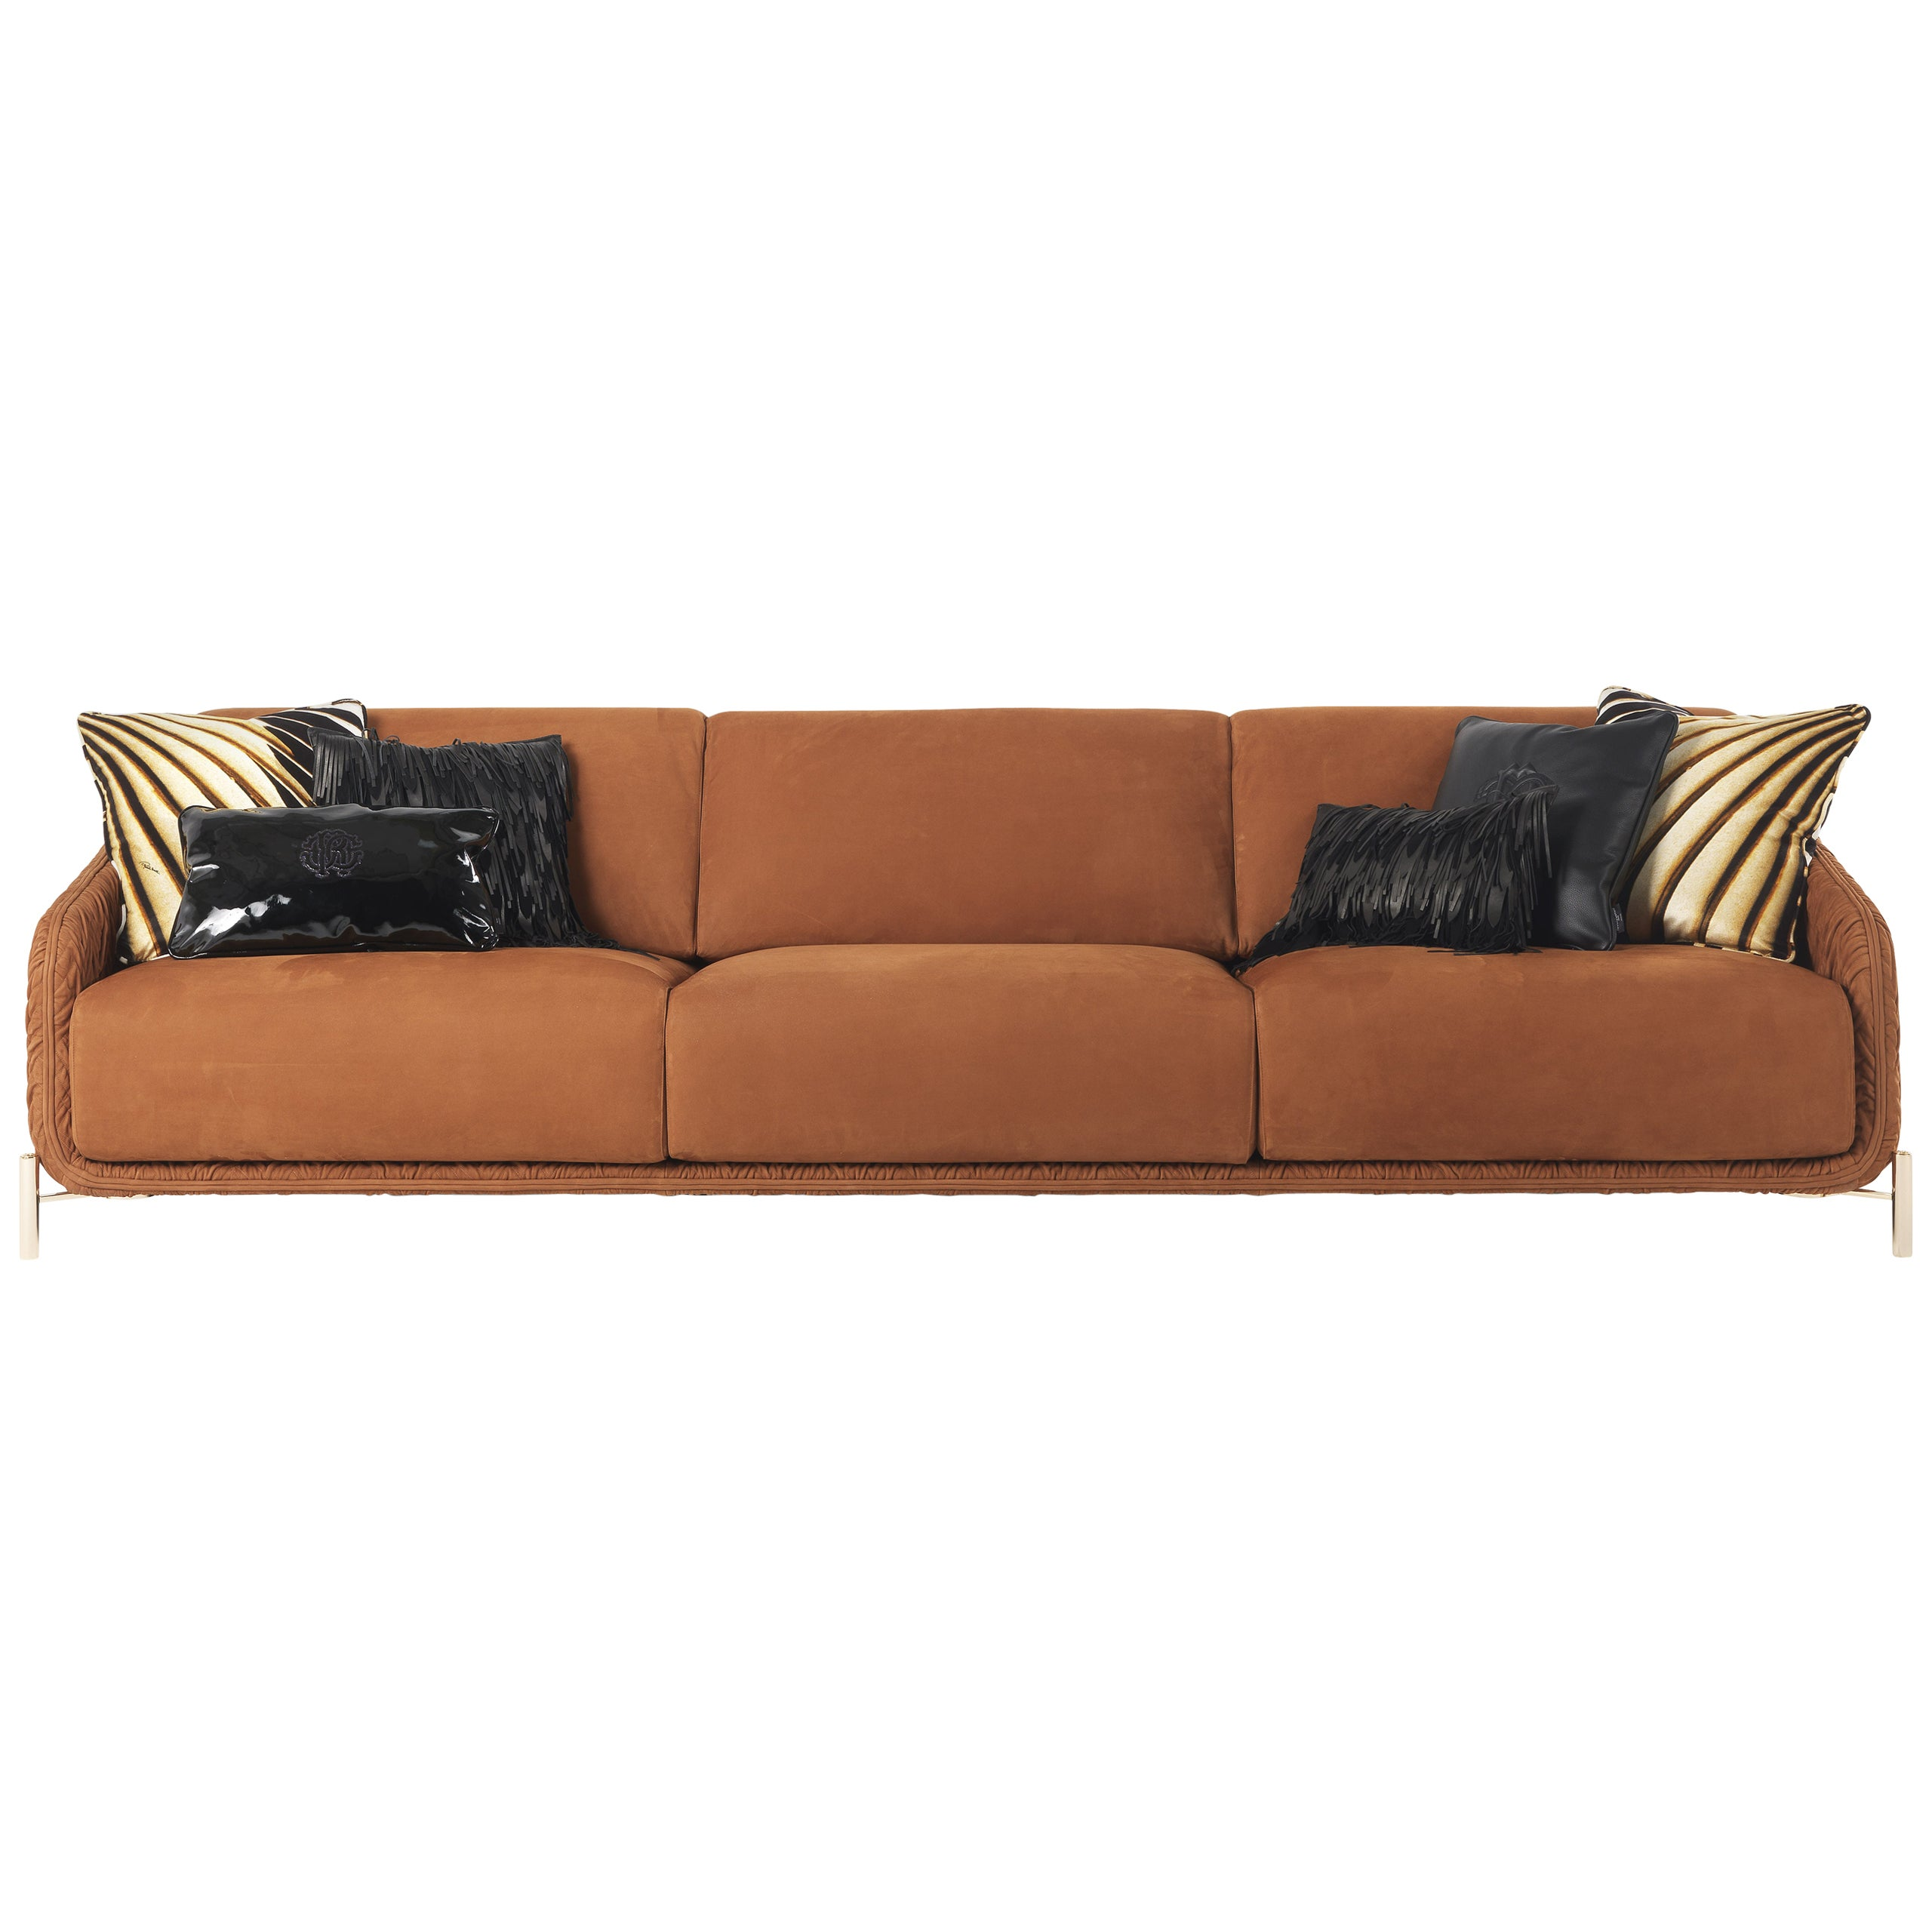 Clifton Sofa in Leather by Roberto Cavalli Home Interiors